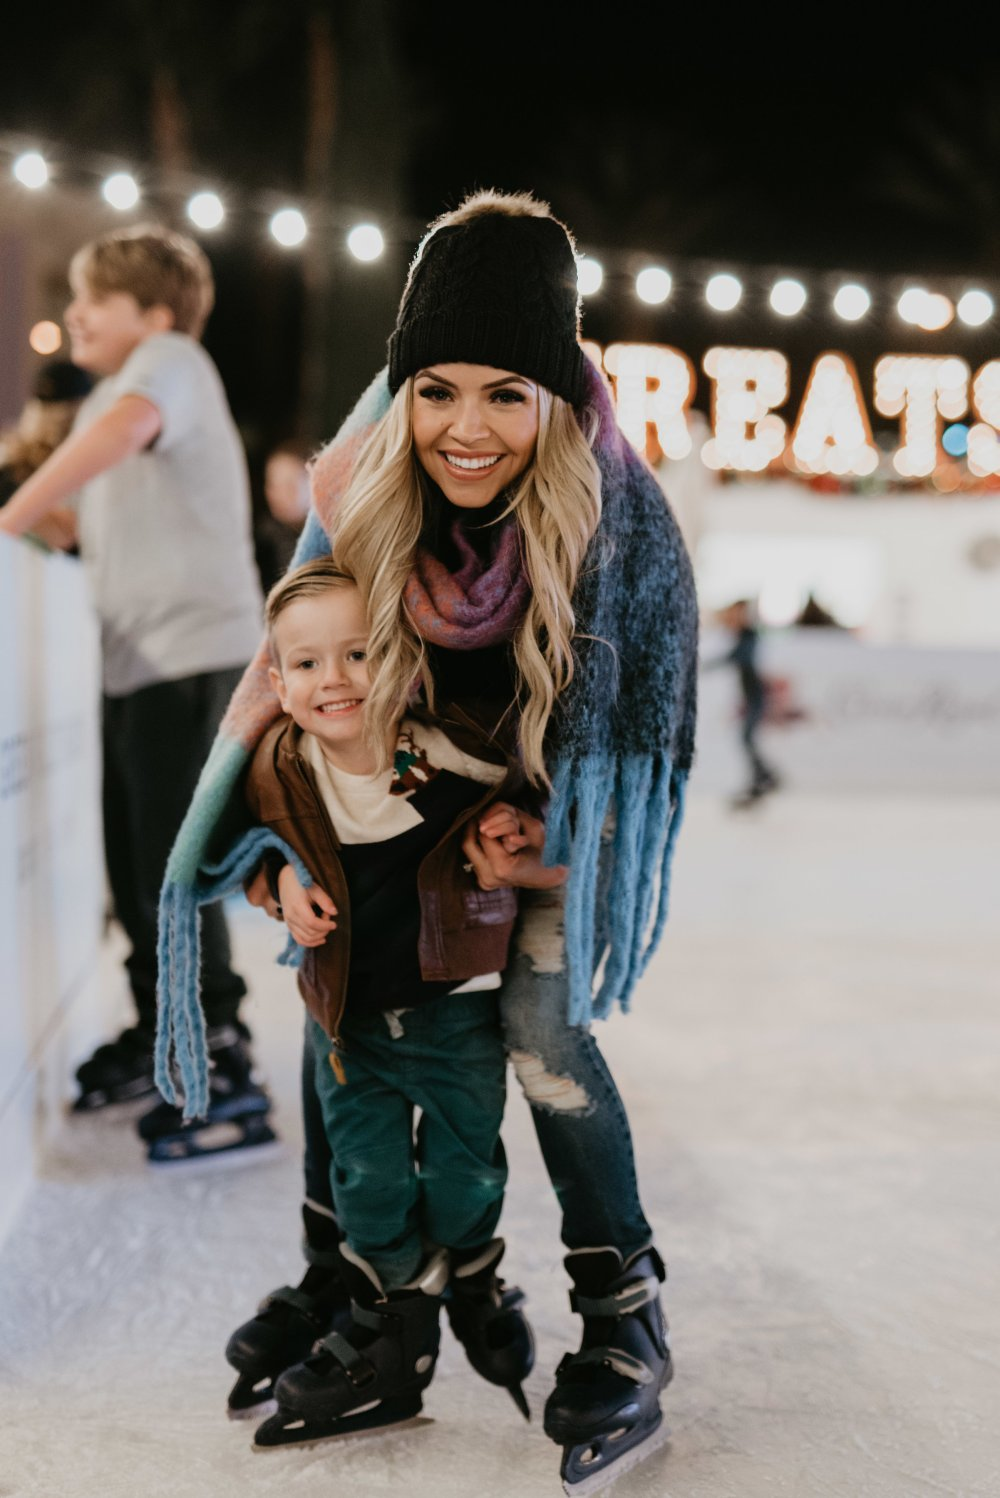 Spending time together as a family going ice skating! Making memories with my children that will last a lifetime! Here is what we wore to keep warm but still stylish! #trulydestiny #winteroutfit #familytime